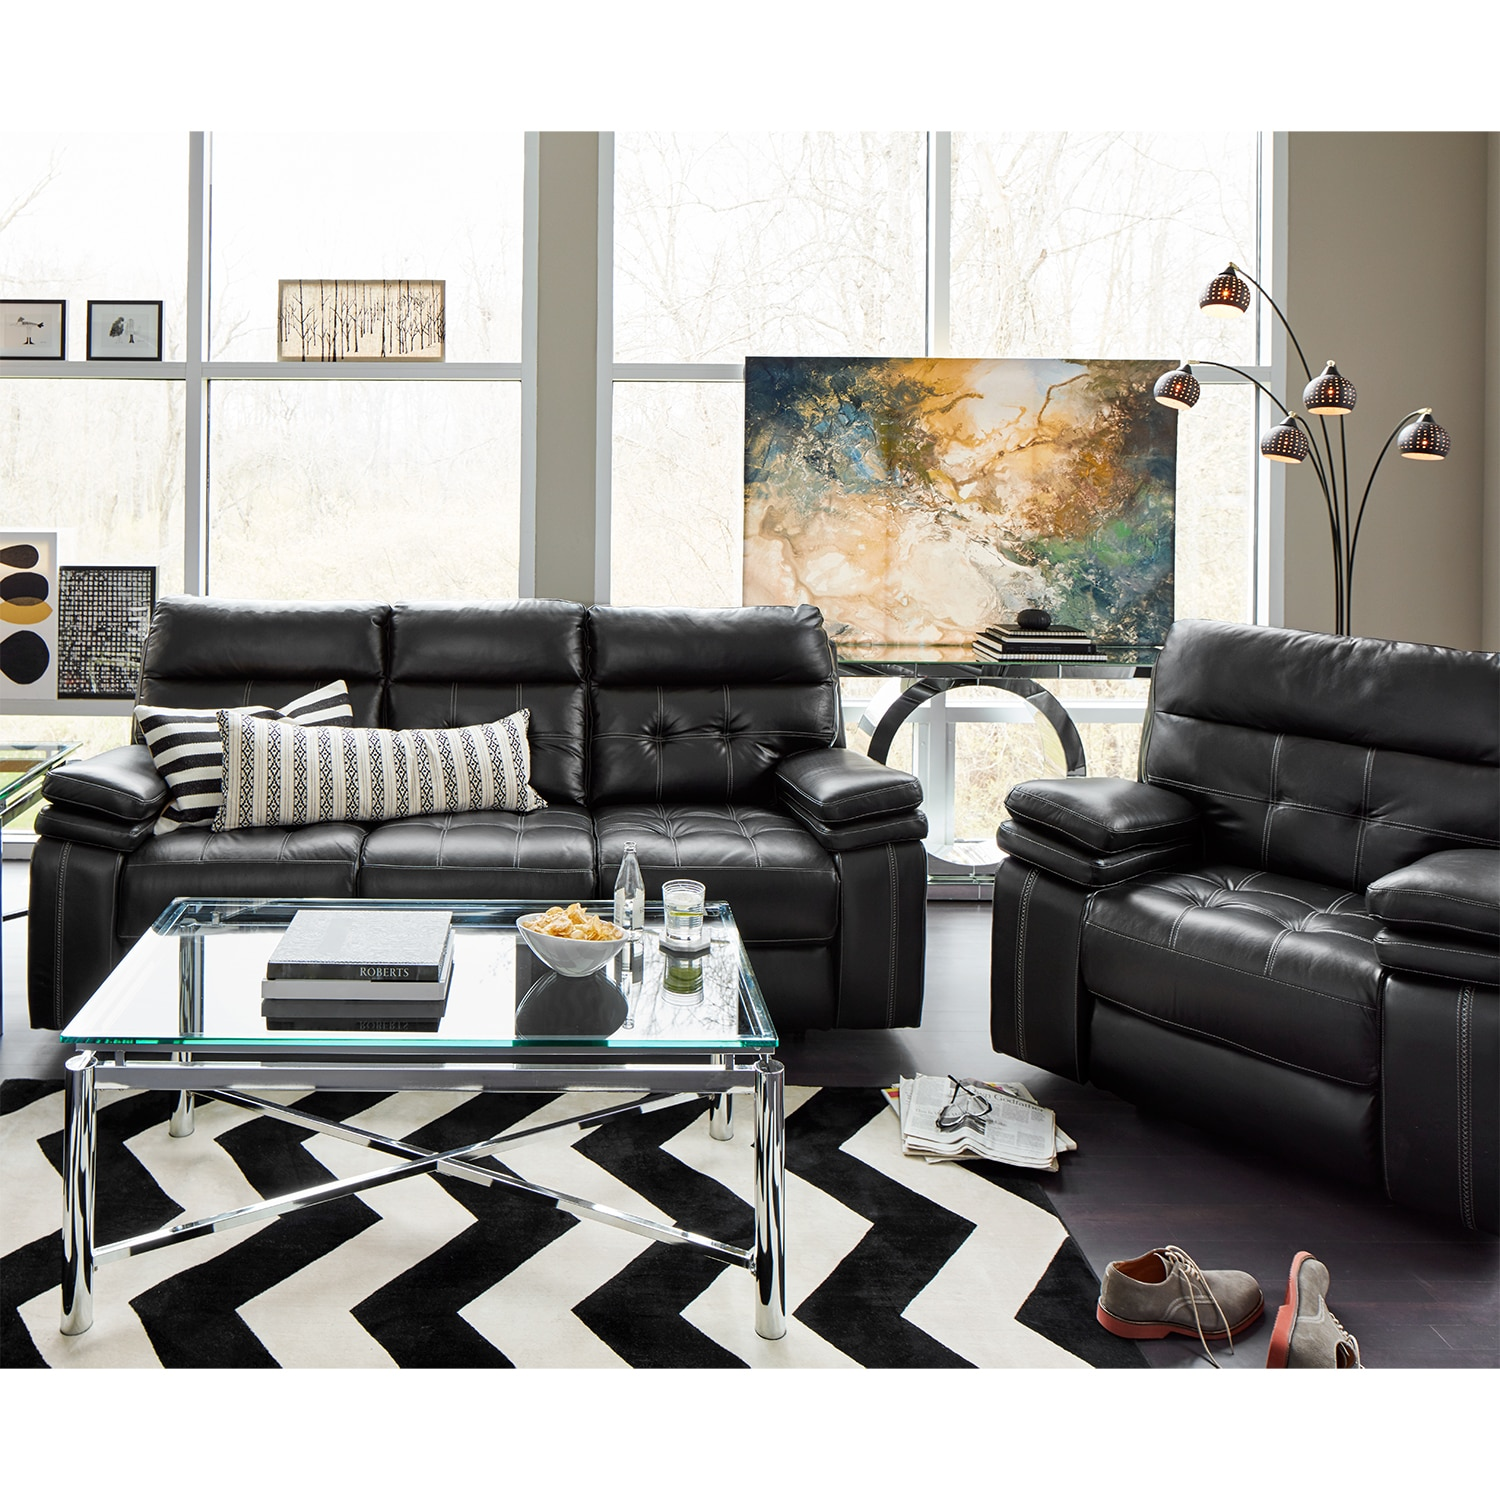 Brisco Power Reclining Sofa and Glider Recliner Set - Black